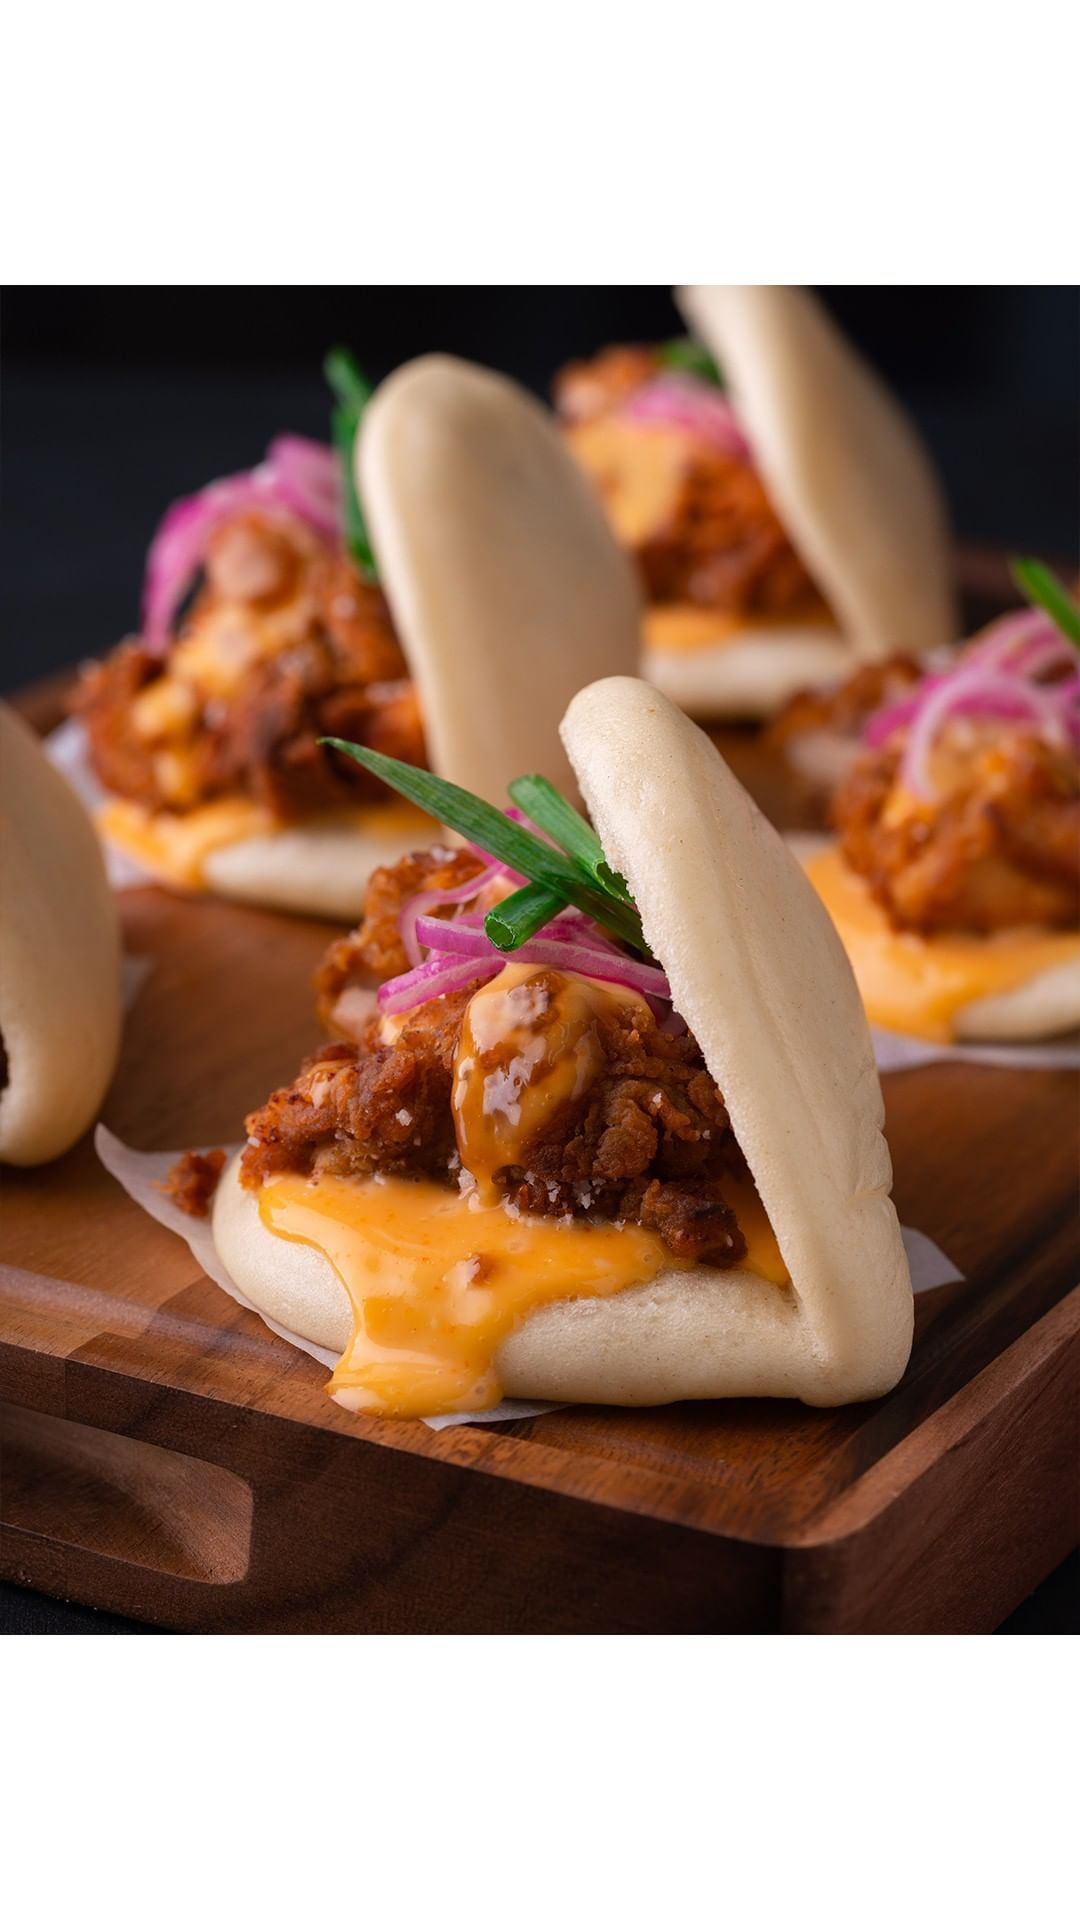 Marion Grasby On Instagram Spicy Fried Chicken Bao Buns With My Special Technique For The Crispiest Crust On Tha Spicy Fried Chicken Recipes Food